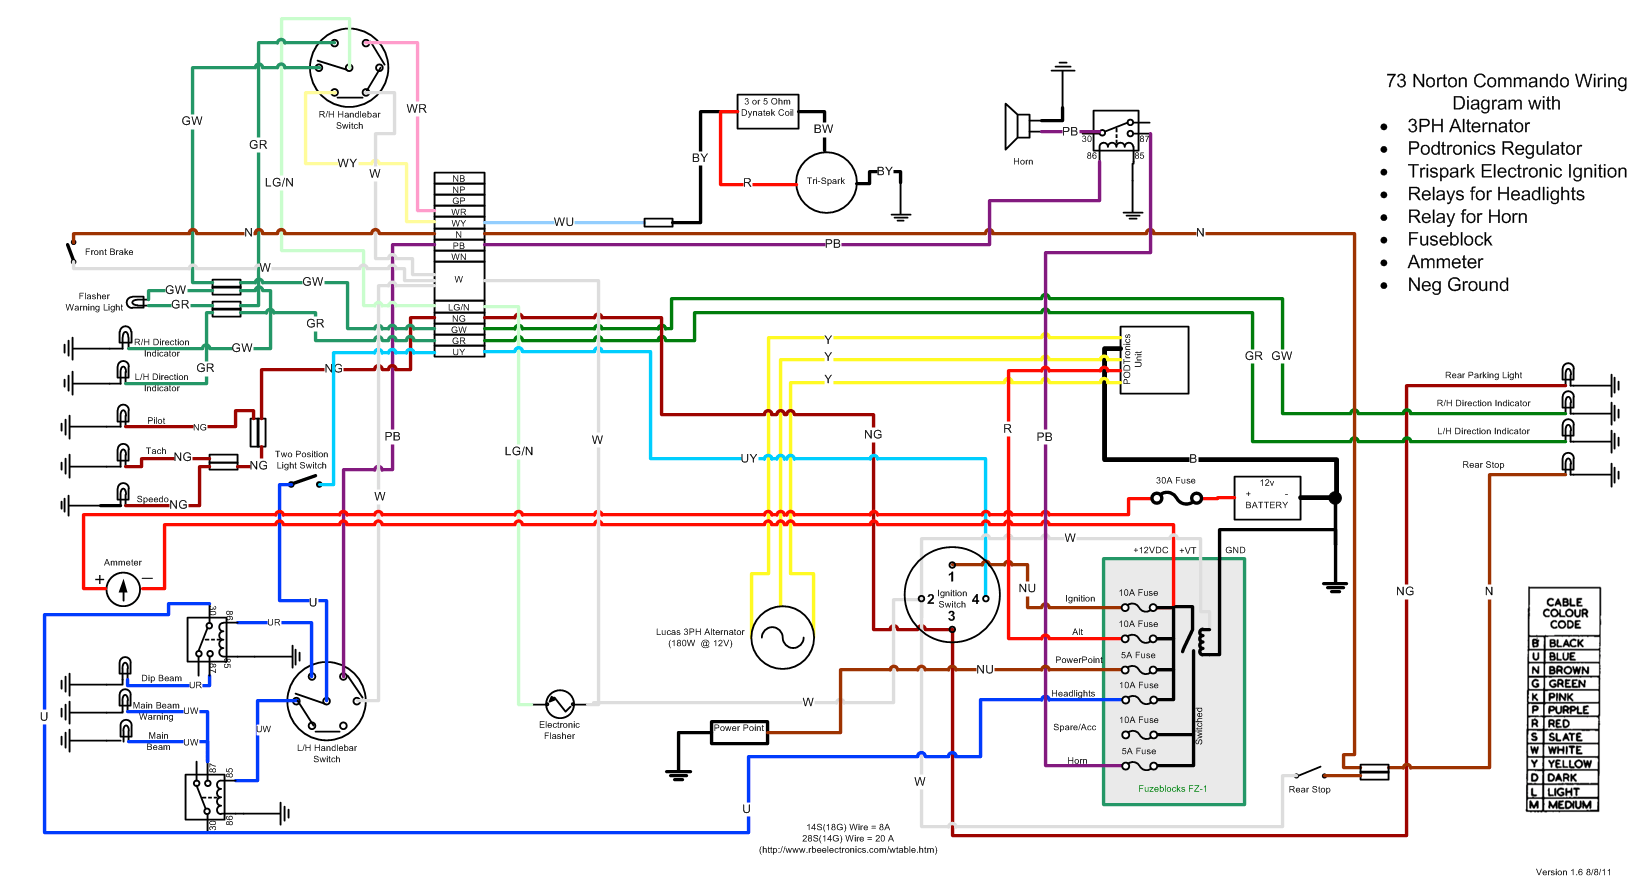 73wiringdiagram?resize\\\\=665%2C359 honda cn250 cdi wiring diagram 6 wire cdi box diagram, honda 90 1983 honda shadow 750 wiring diagram at suagrazia.org